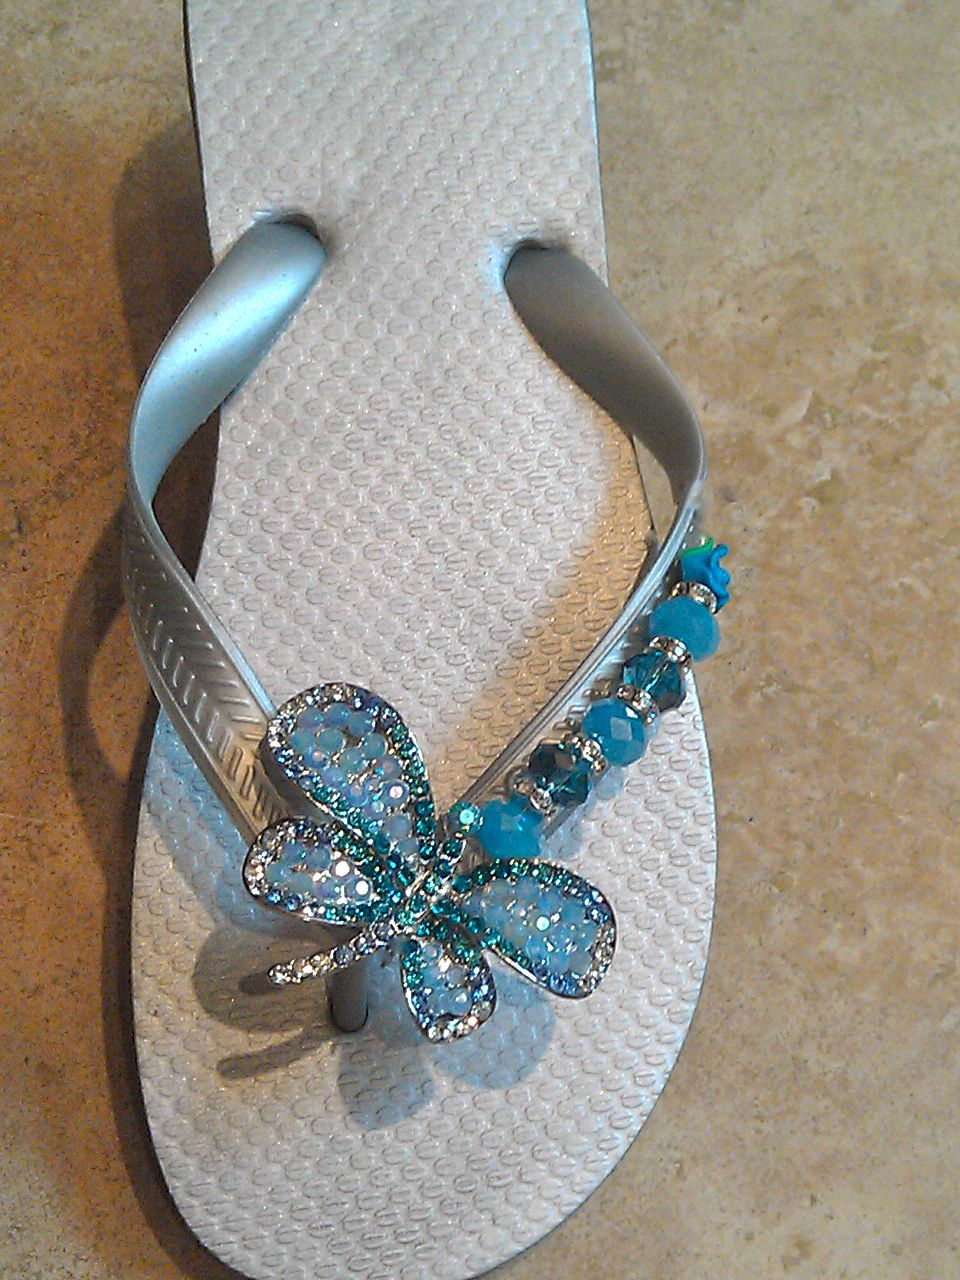 DRAGONFLY, OH MY! By Flipinista, Your BFF (Best Flip Flop